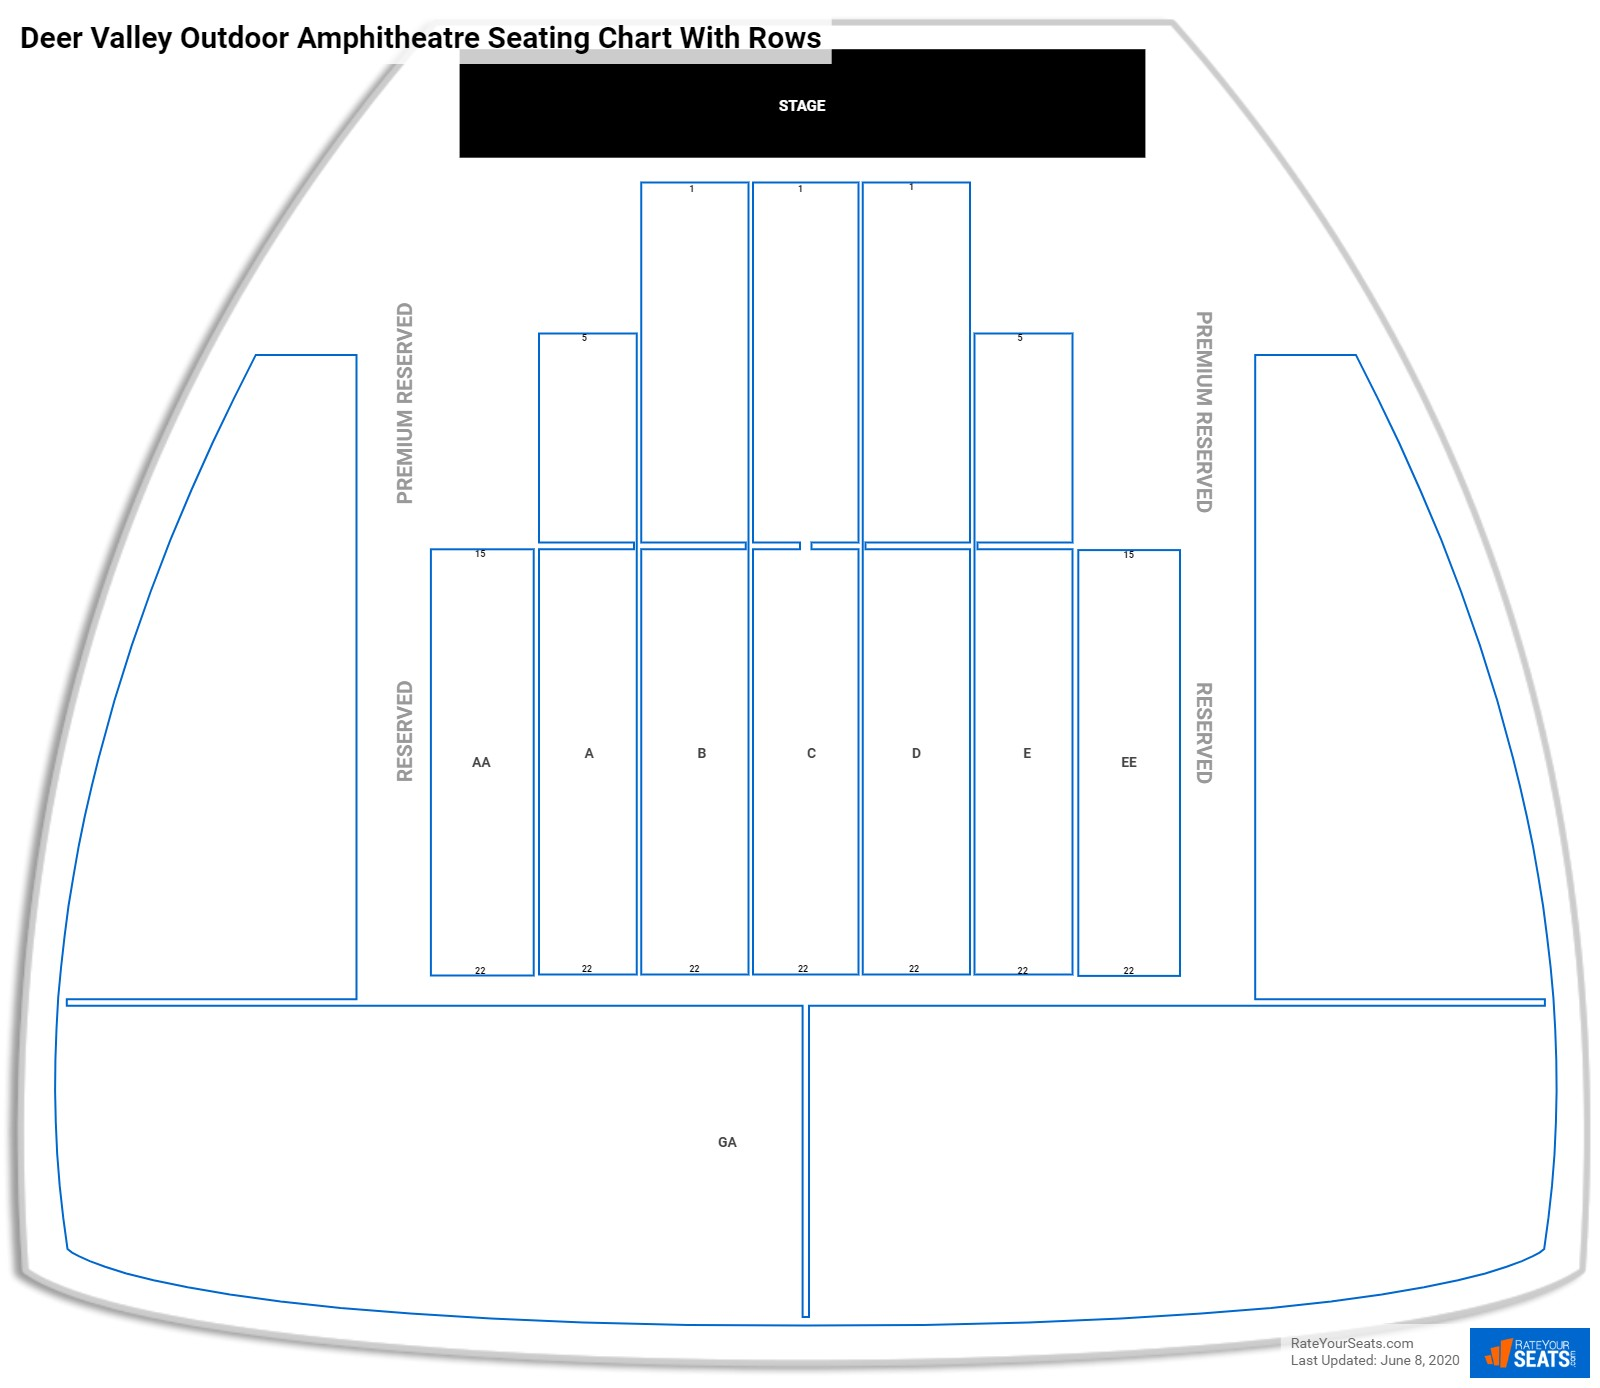 Deer Valley Outdoor Amphitheatre seating chart with rows